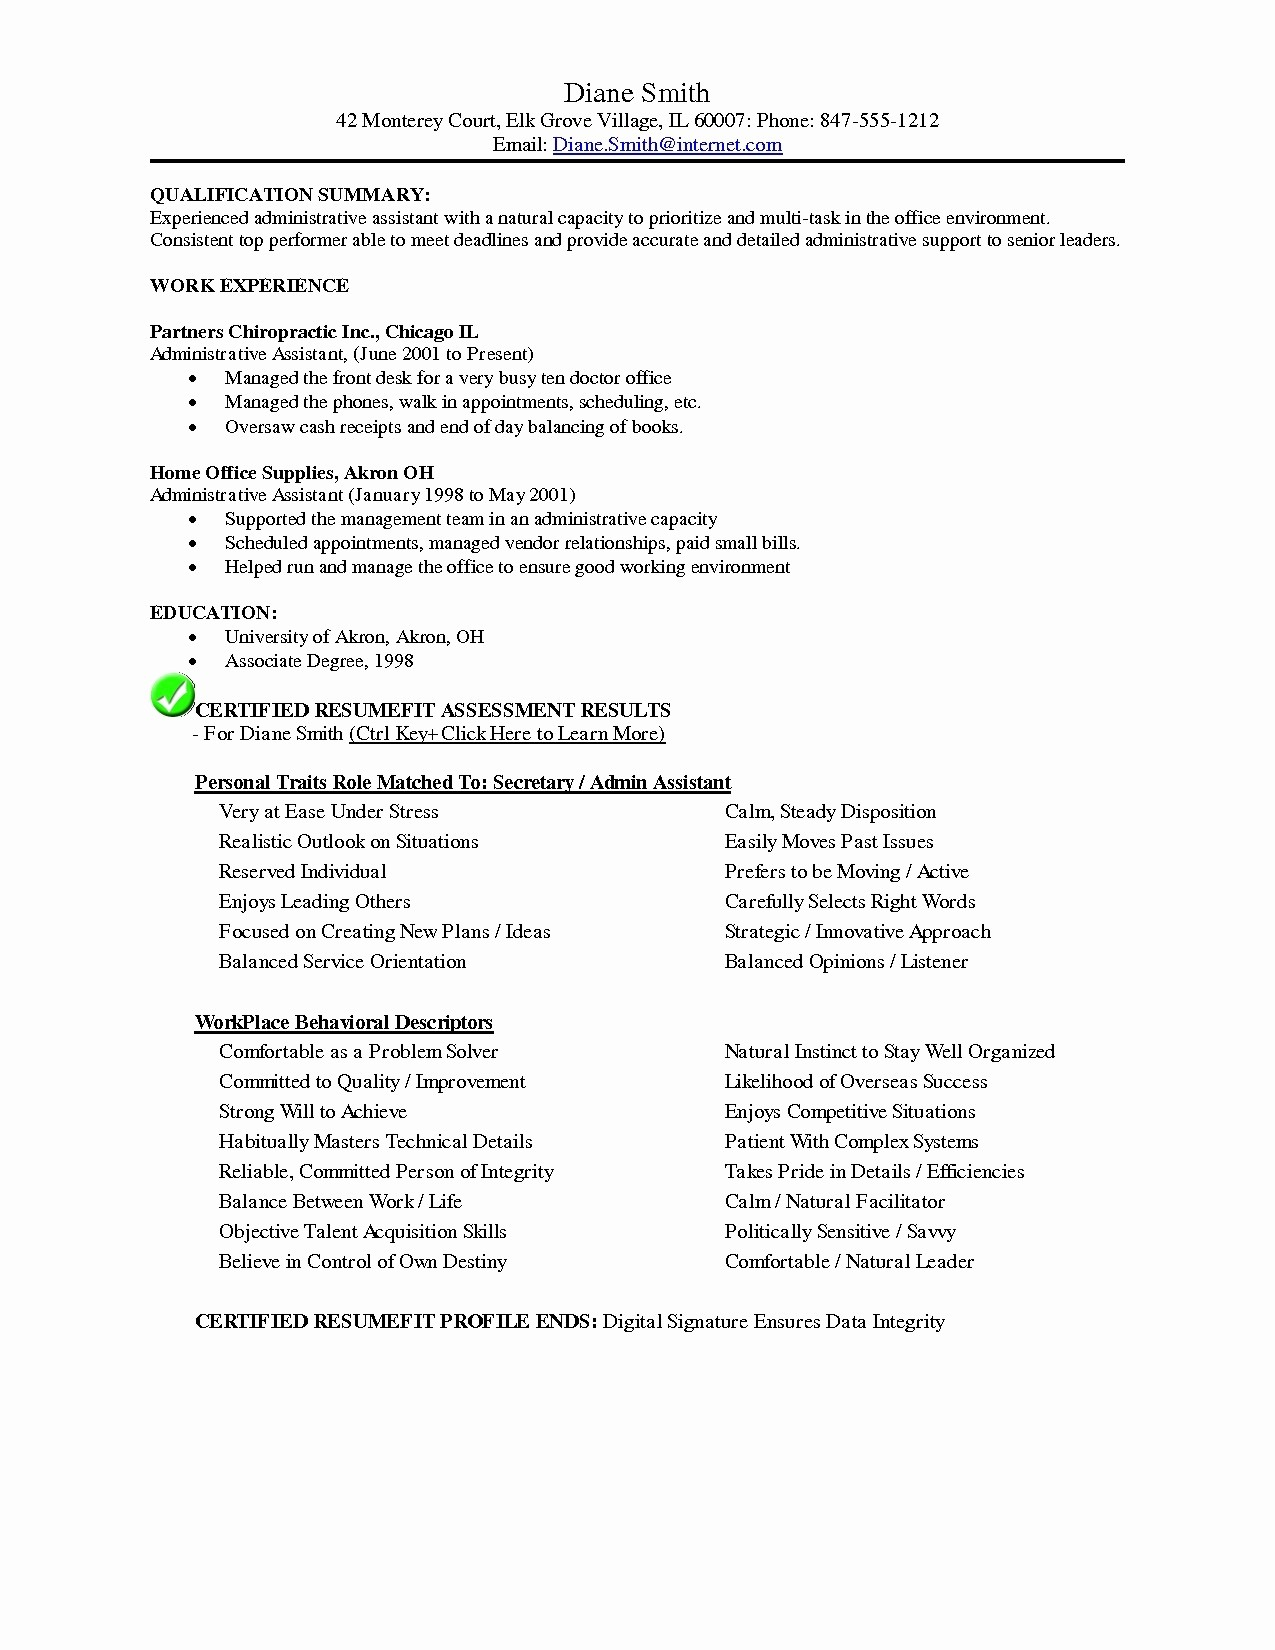 Single Job Resume - How to Do A Job Resume Inspirational Luxury Examples Resumes